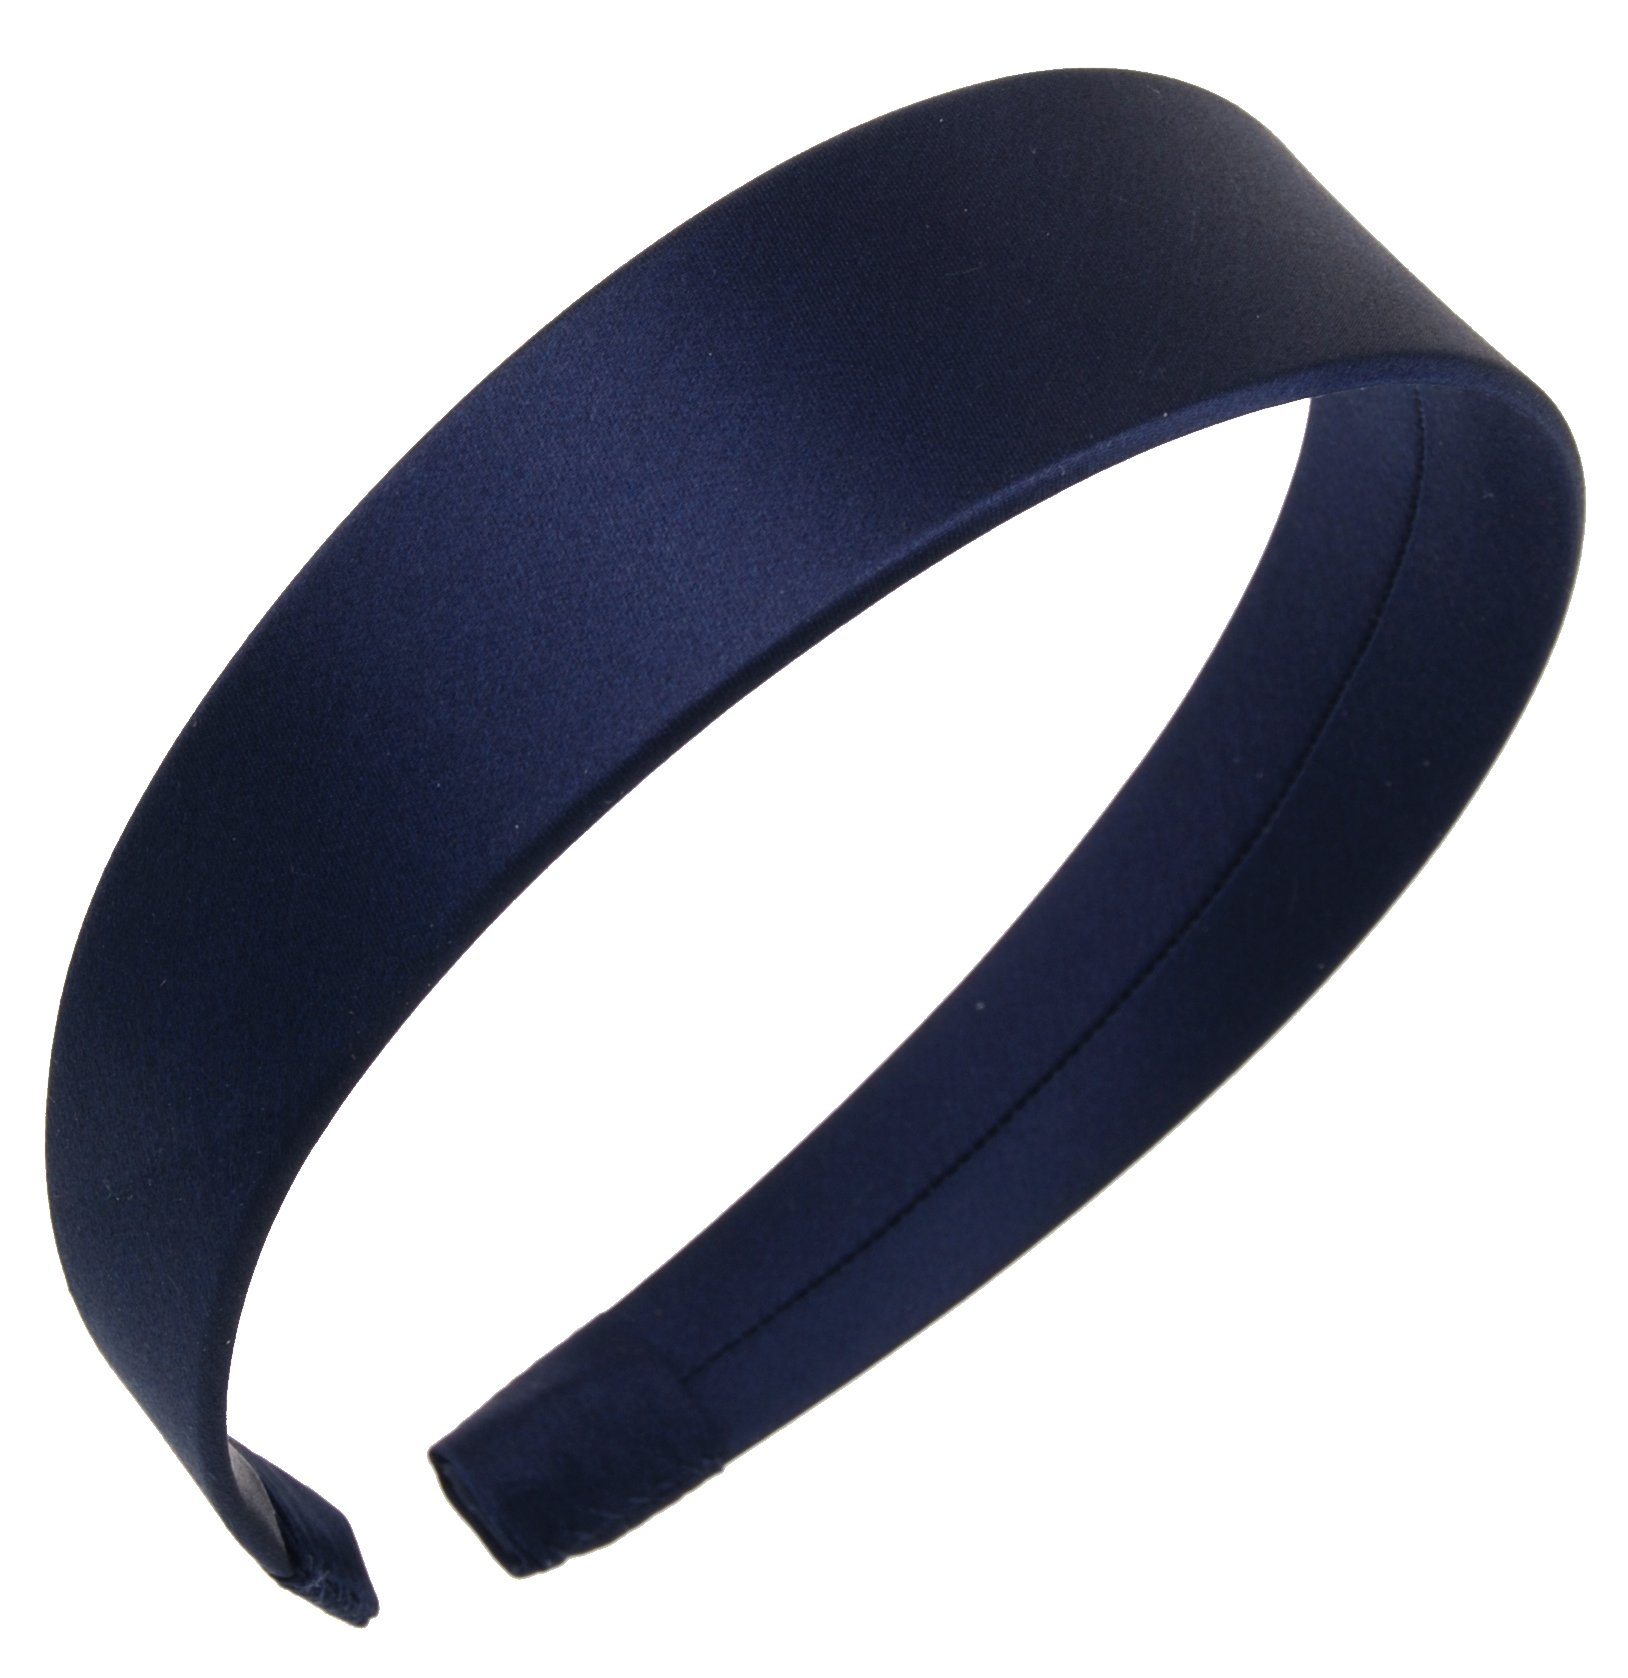 L. Erickson USA 1 1/2'' Headband - Silk Charmeuse Navy